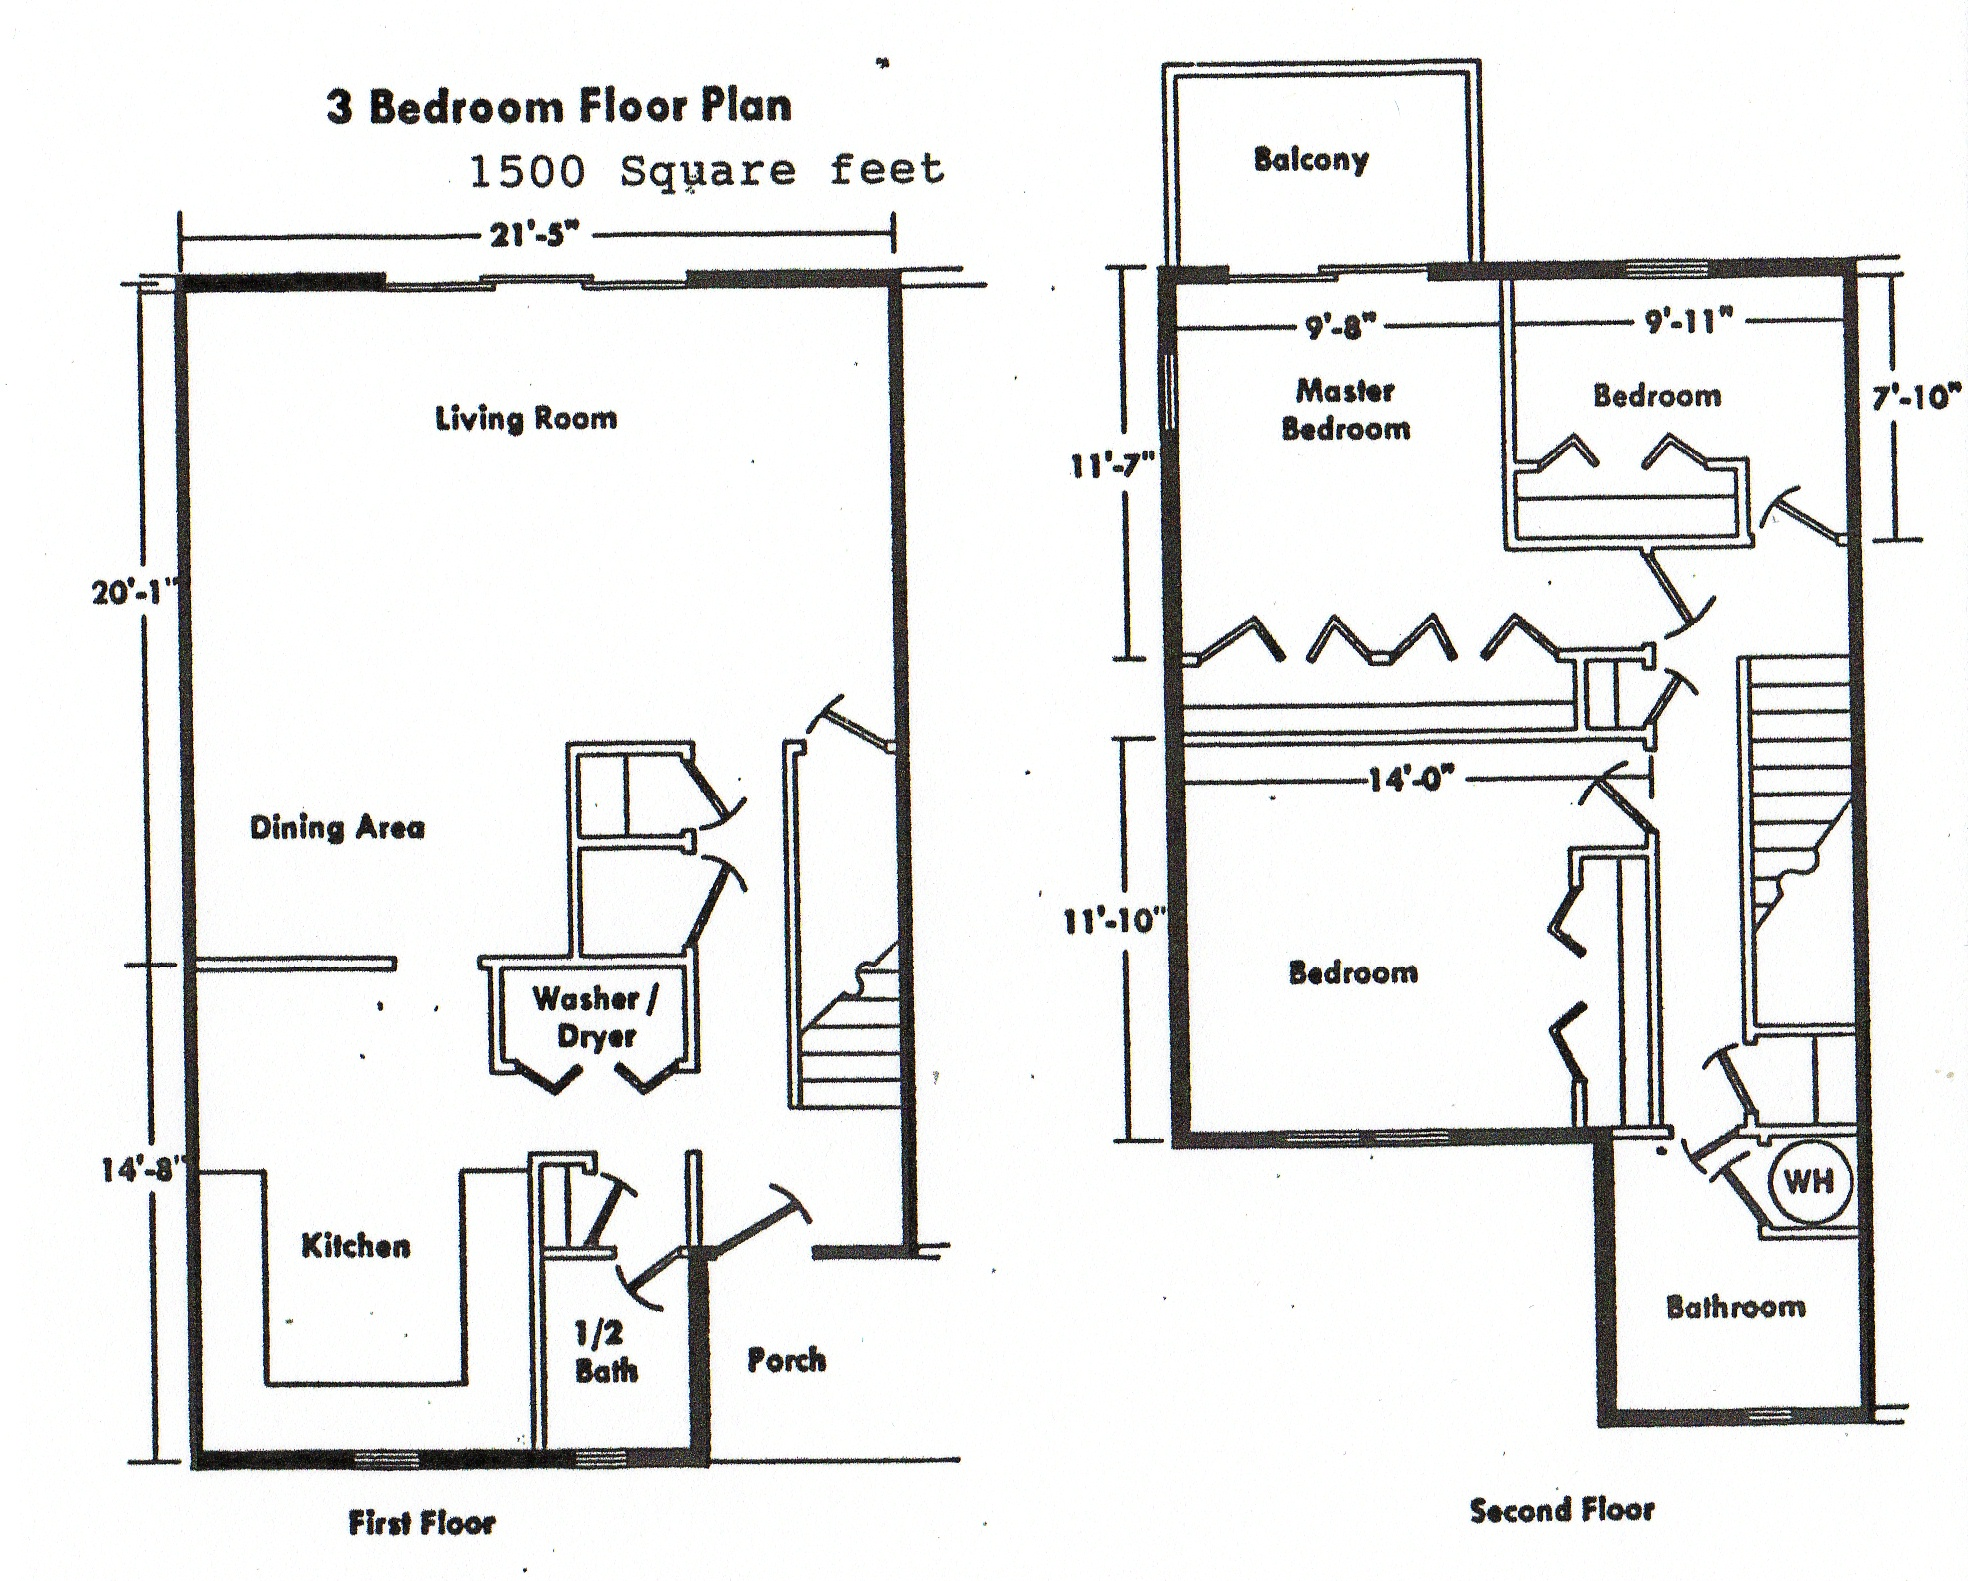 Home ideas - Three bedroom house floor plans ...